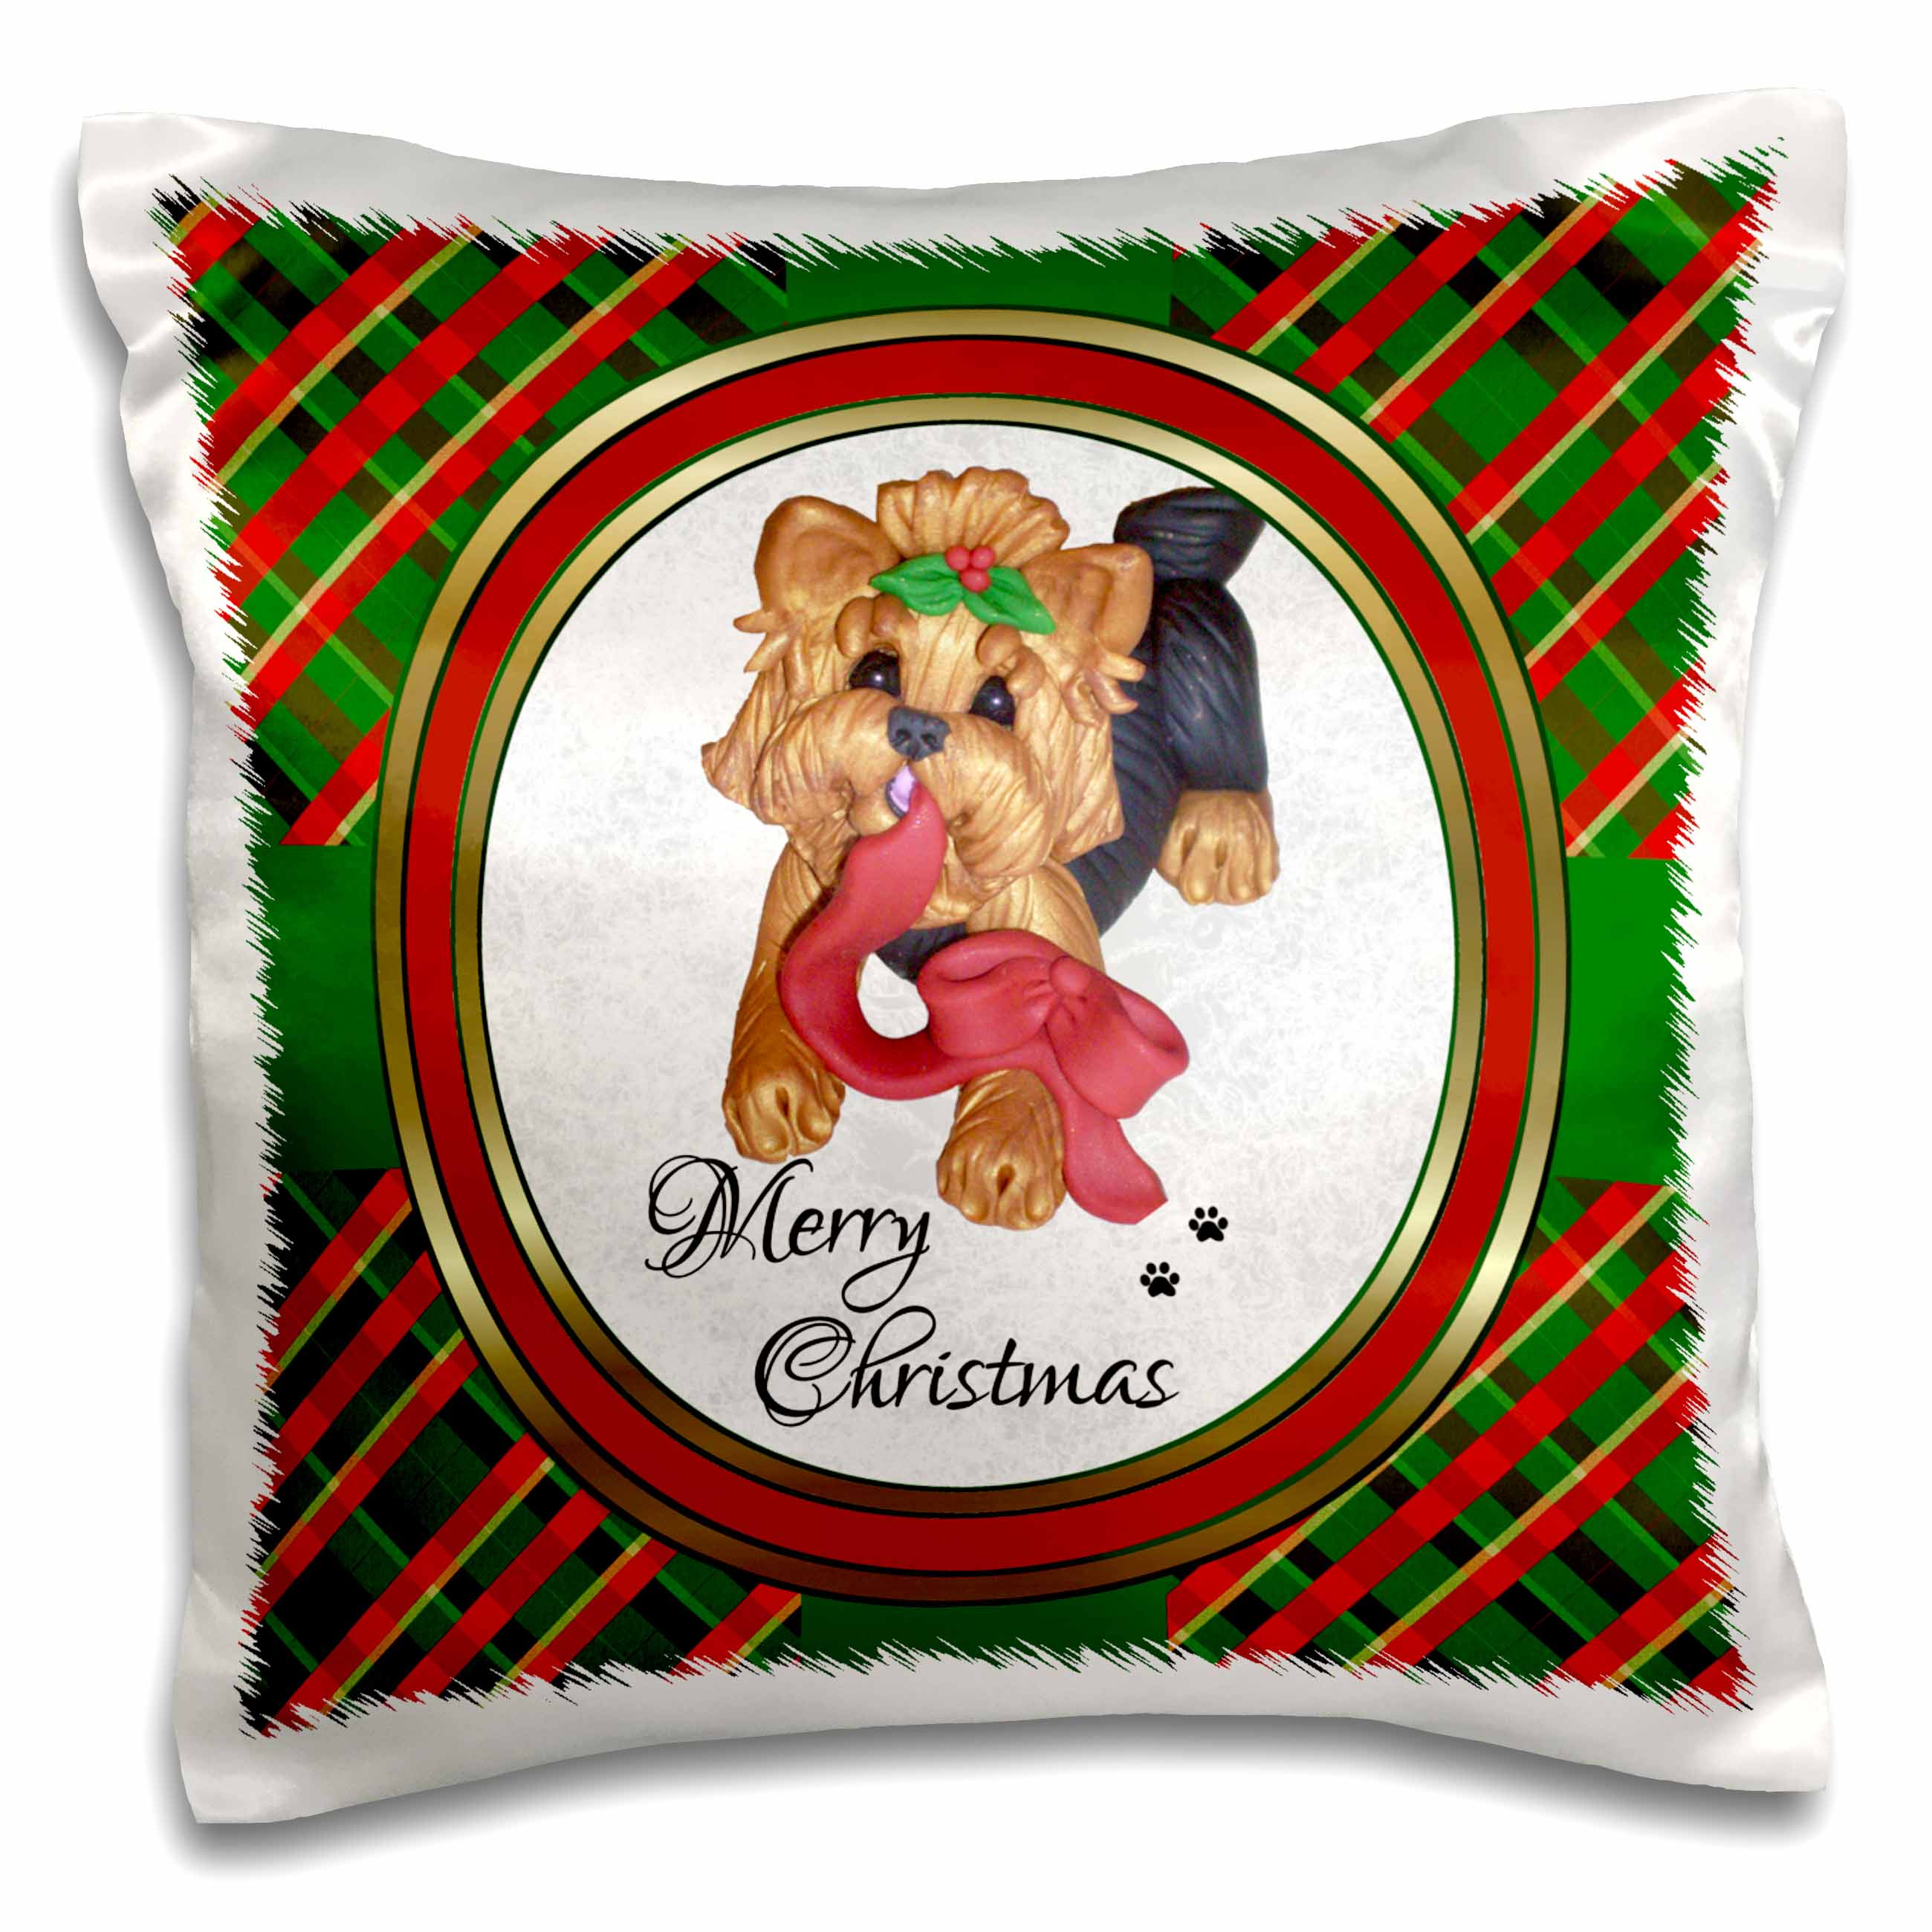 3dRose Cute Merry Christmas Red Ribbon Yorkie Yorkshire Terrier Dog Art , Pillow Case, 16 by 16-inch